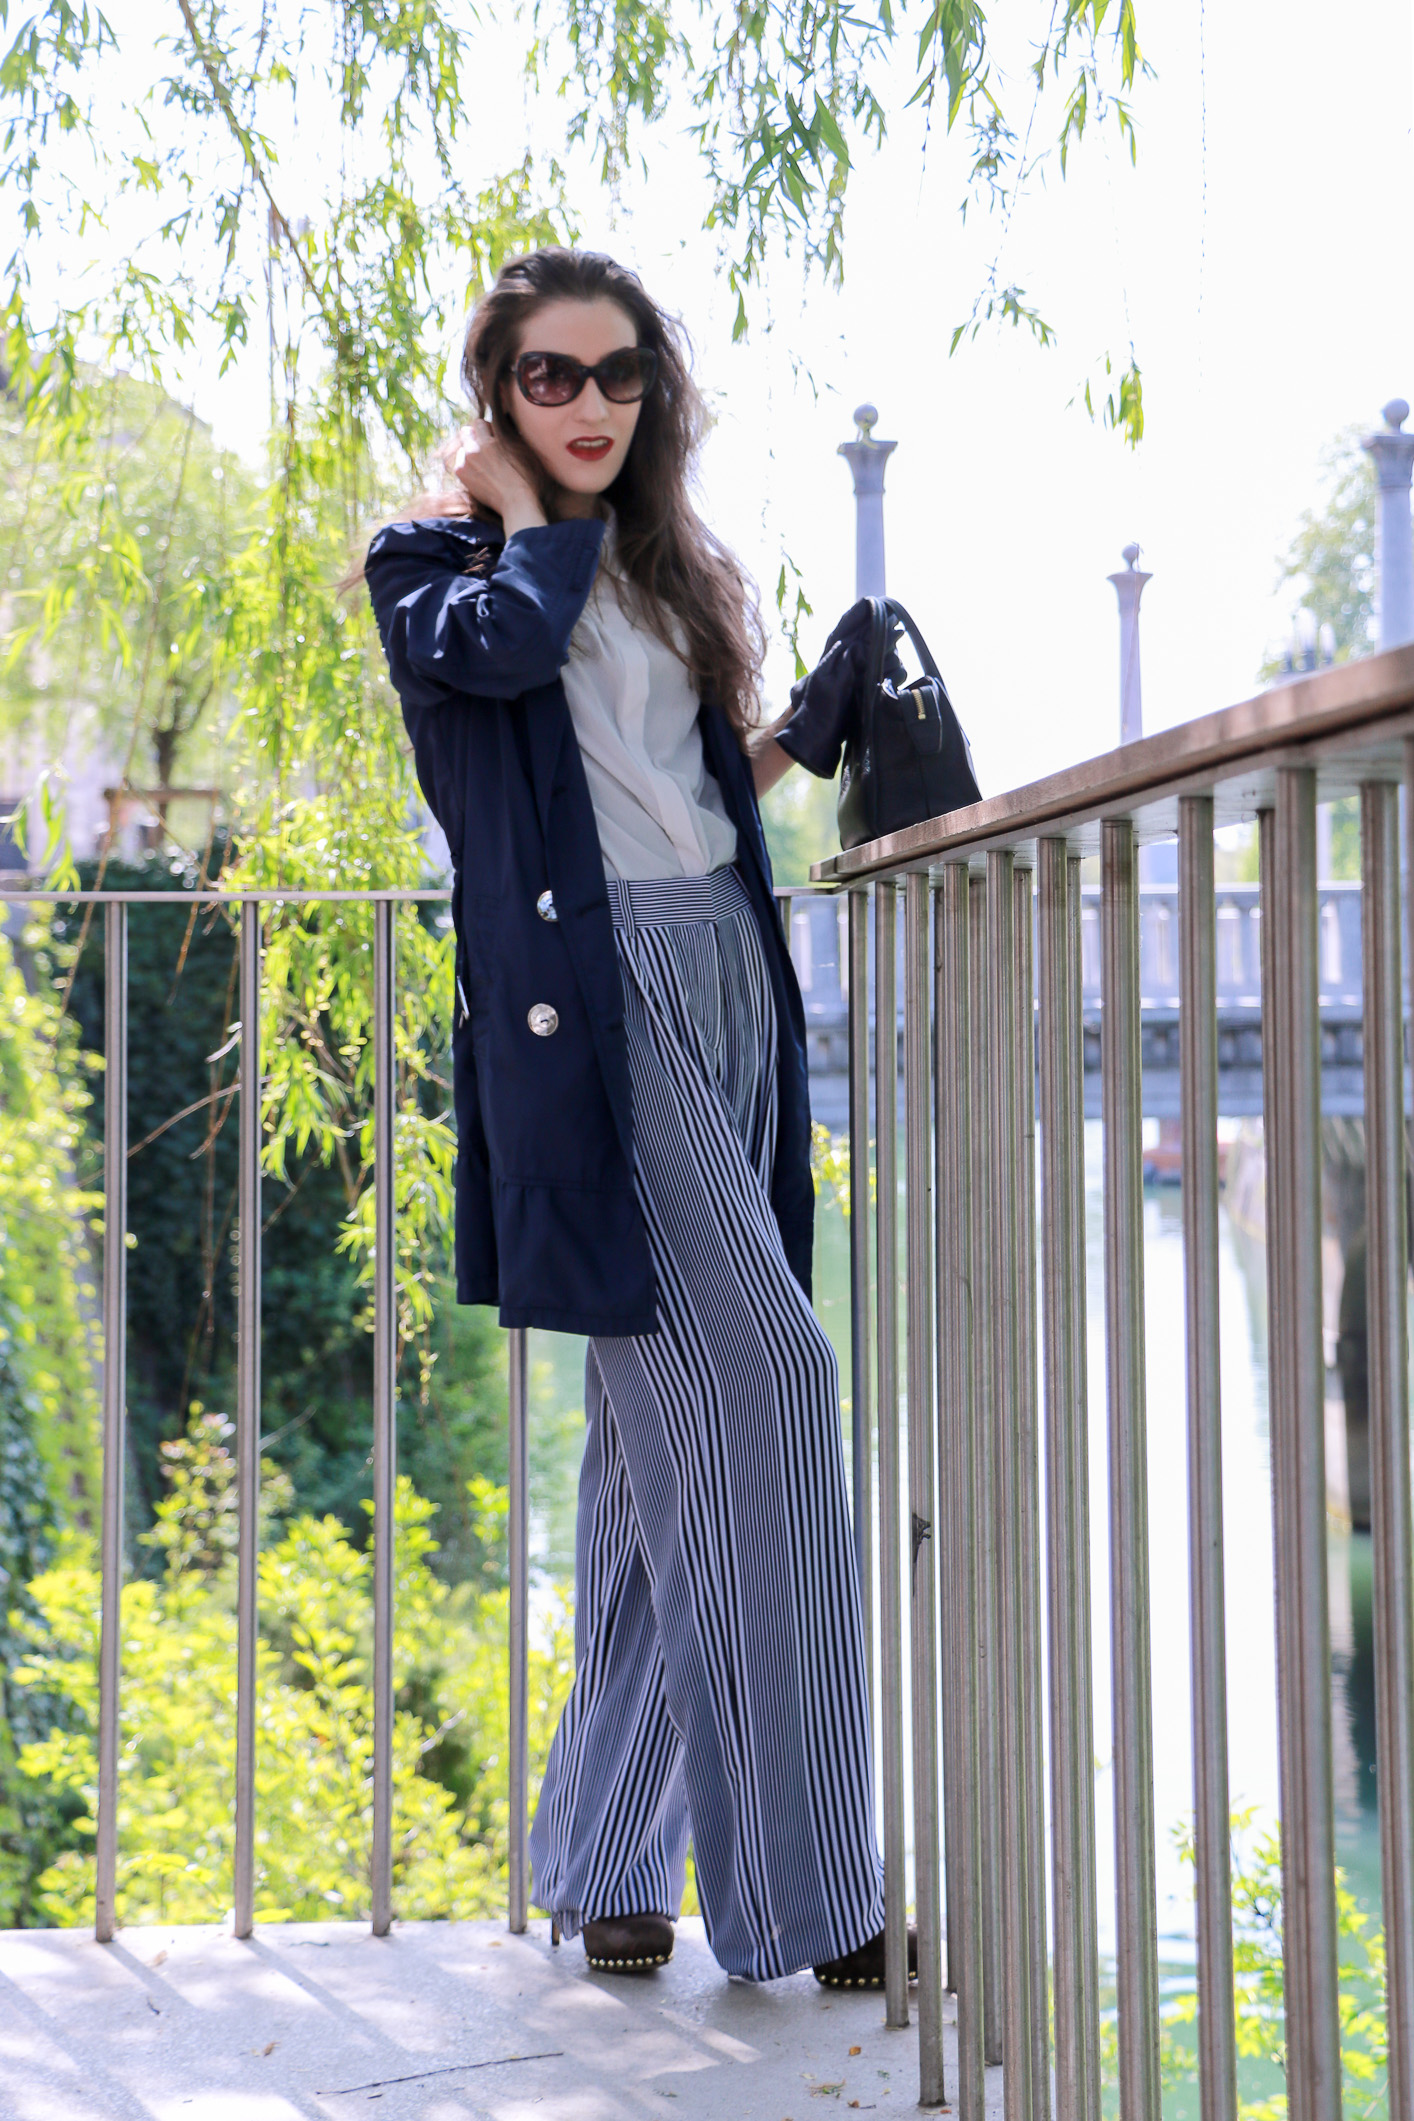 Fashion blogger Veronika Lipar of Brunette From Wall Street sharing how to style wide-leg striped pants for business casual look